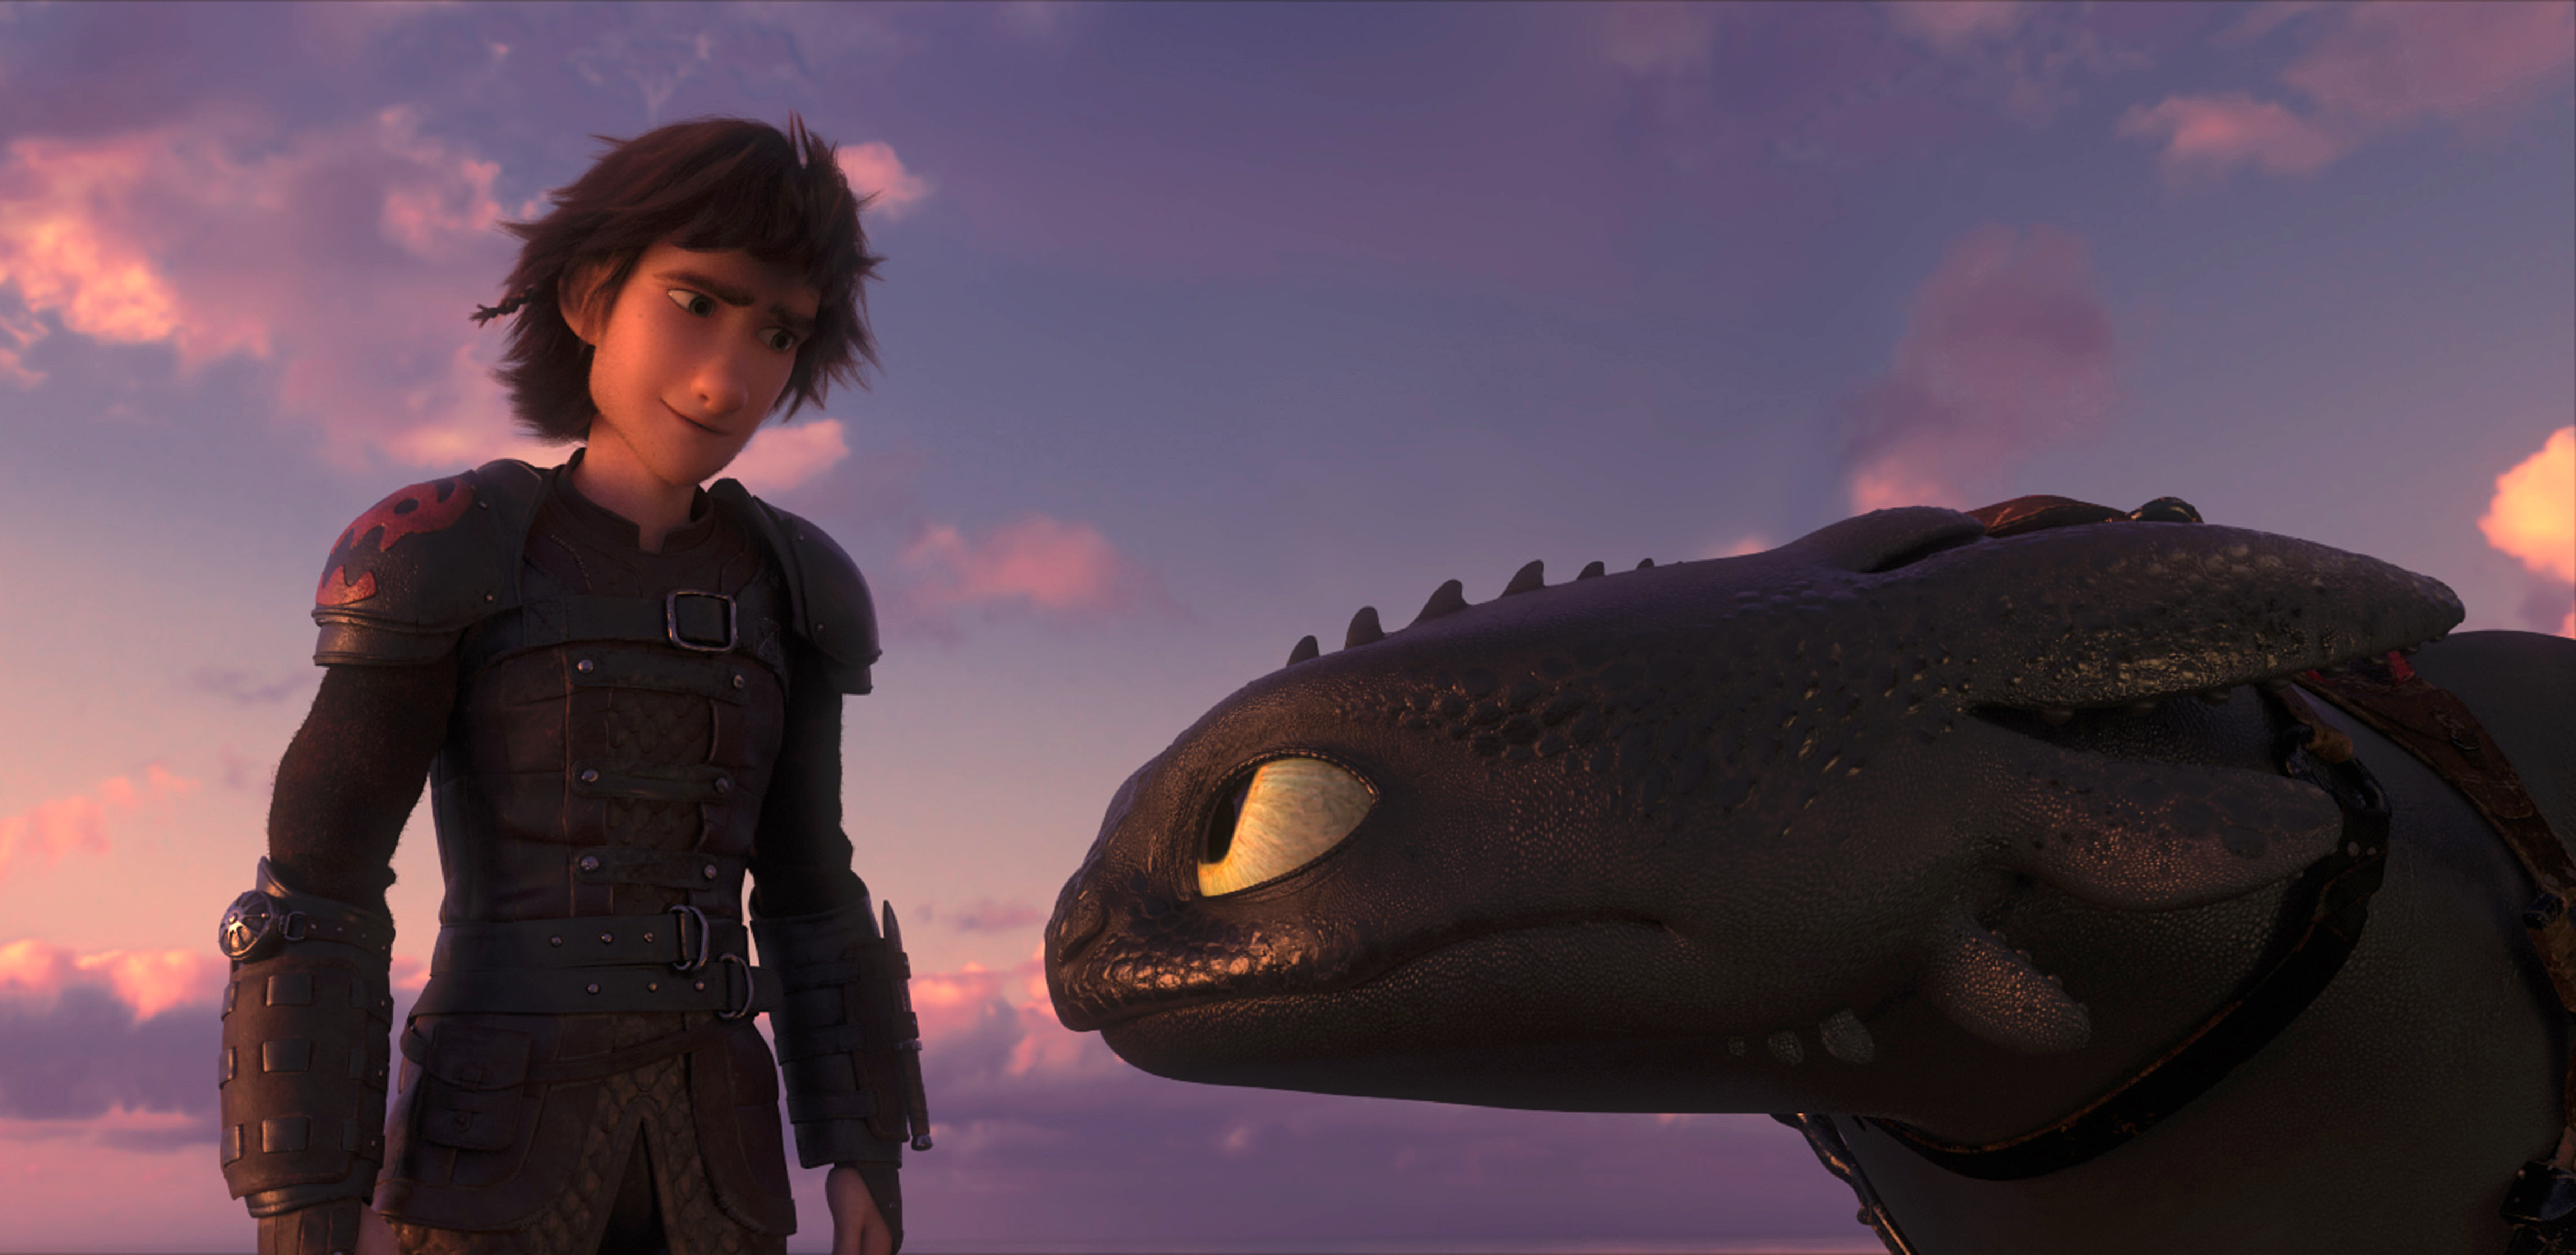 How to Train Your Dragon 3 wraps up a complex coming-of-age story